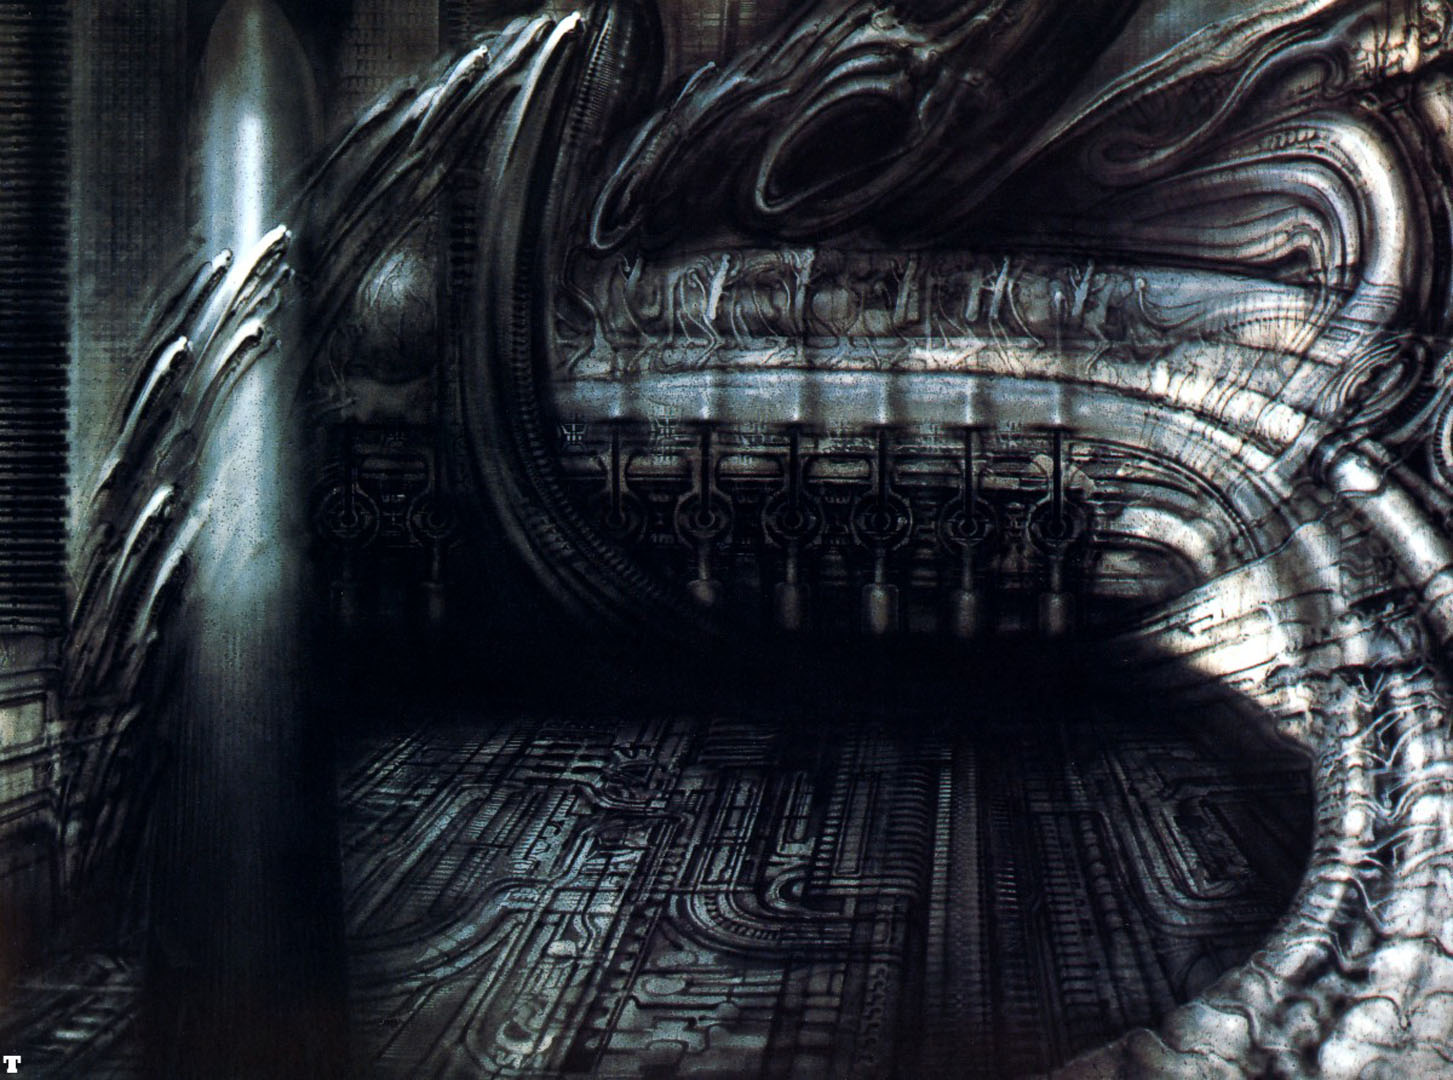 Biomechanical Landscape 007 - Science Fiction H R Giger